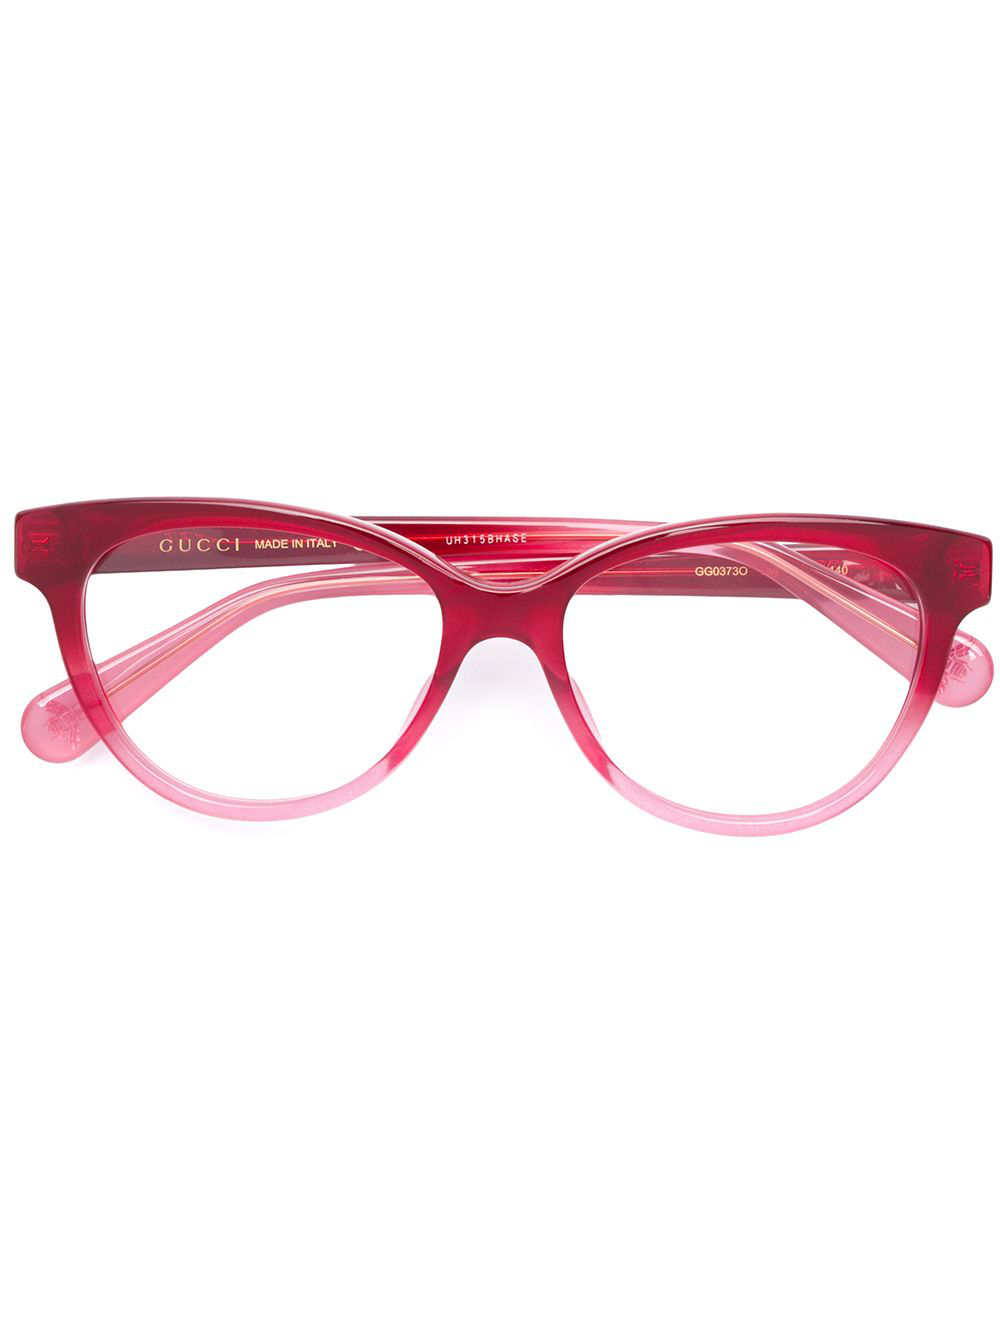 ad697562d3a Gucci Eyewear Cat Eye Glasses - Red